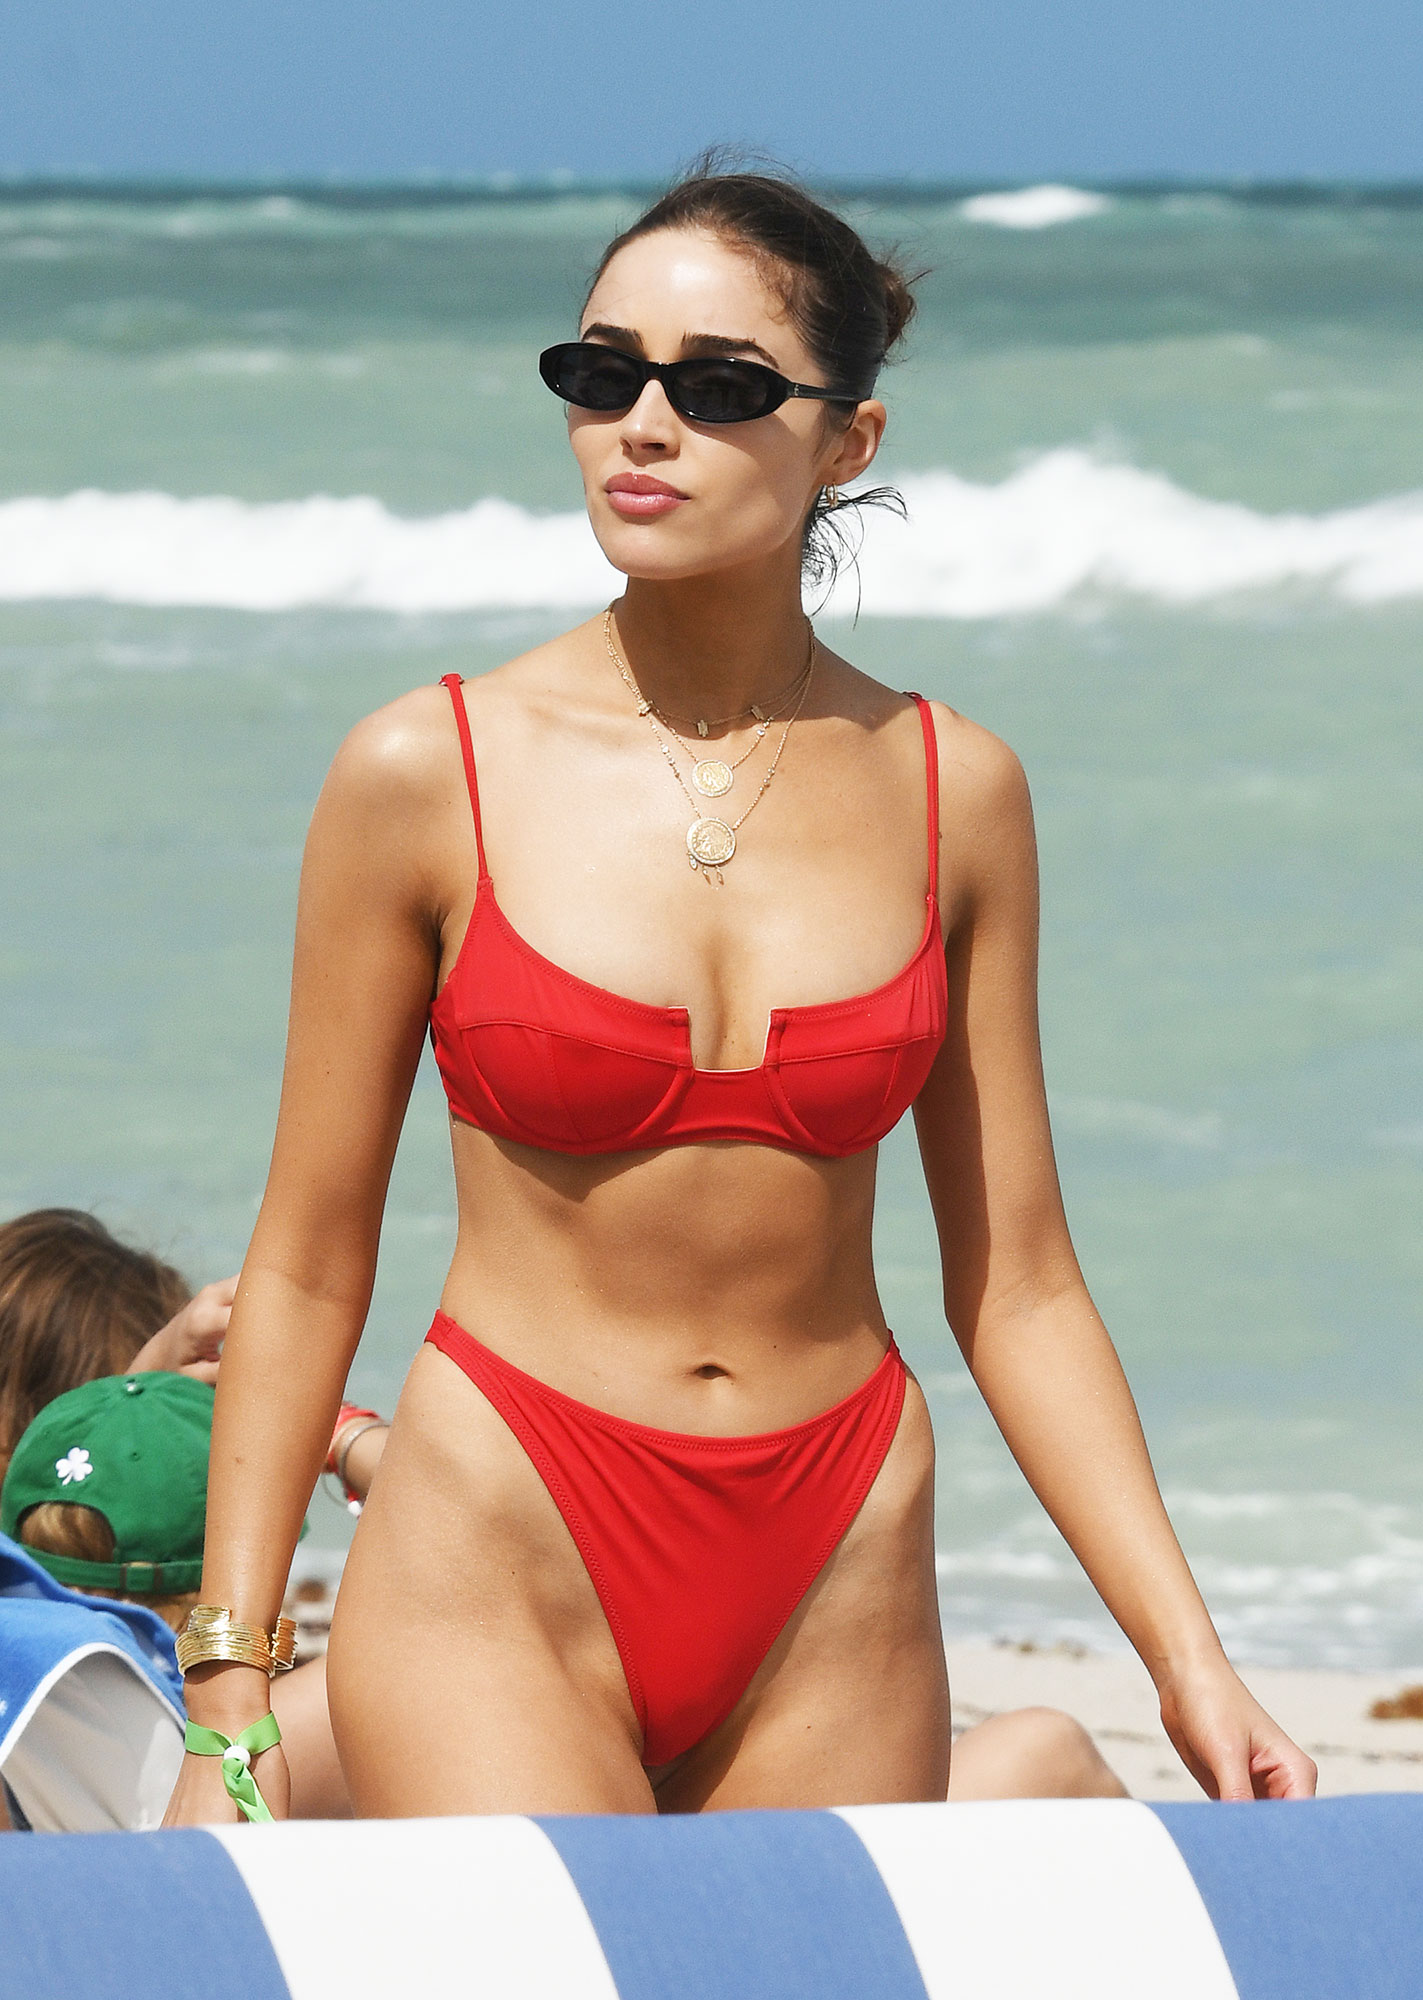 Olivia Culpo and Gigi Hadid Make the Case for Primary Color Bikinis - Olivia Culpo stands out in a red bikini as she hits the beach with model Devon Windsor in Miami. 28 Mar 2019